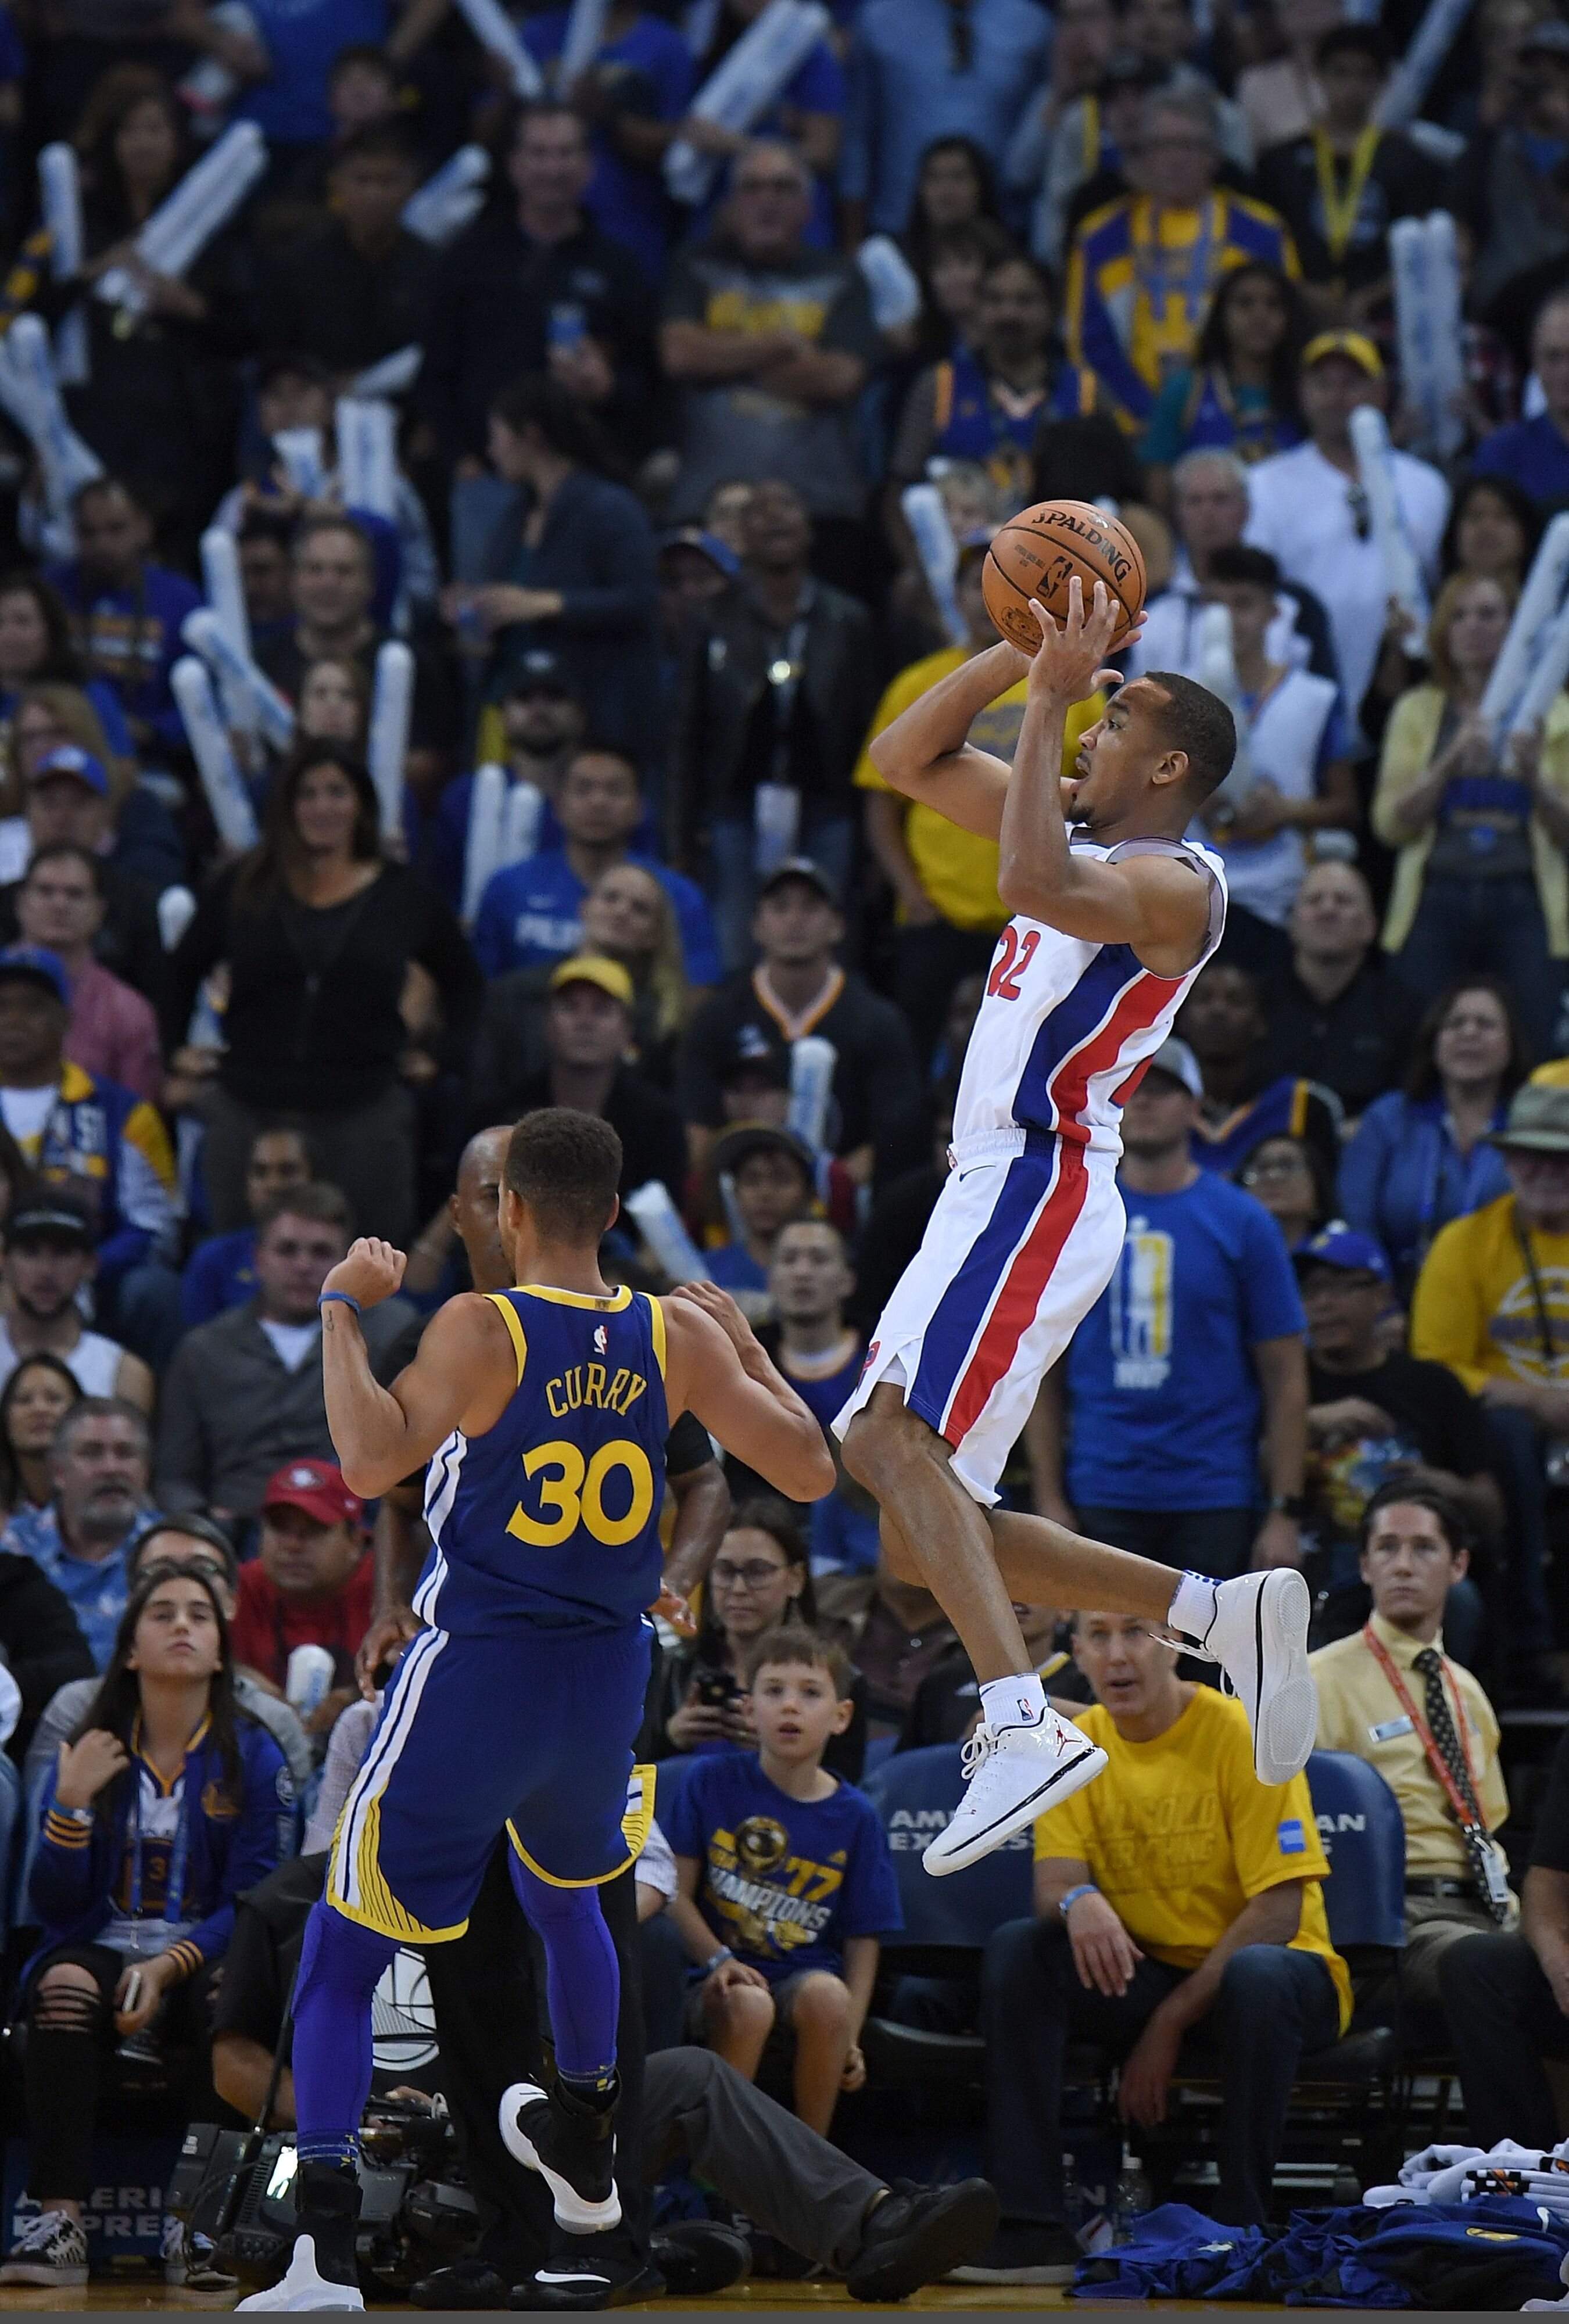 869449020-detroit-pistons-v-golden-state-warriors.jpg